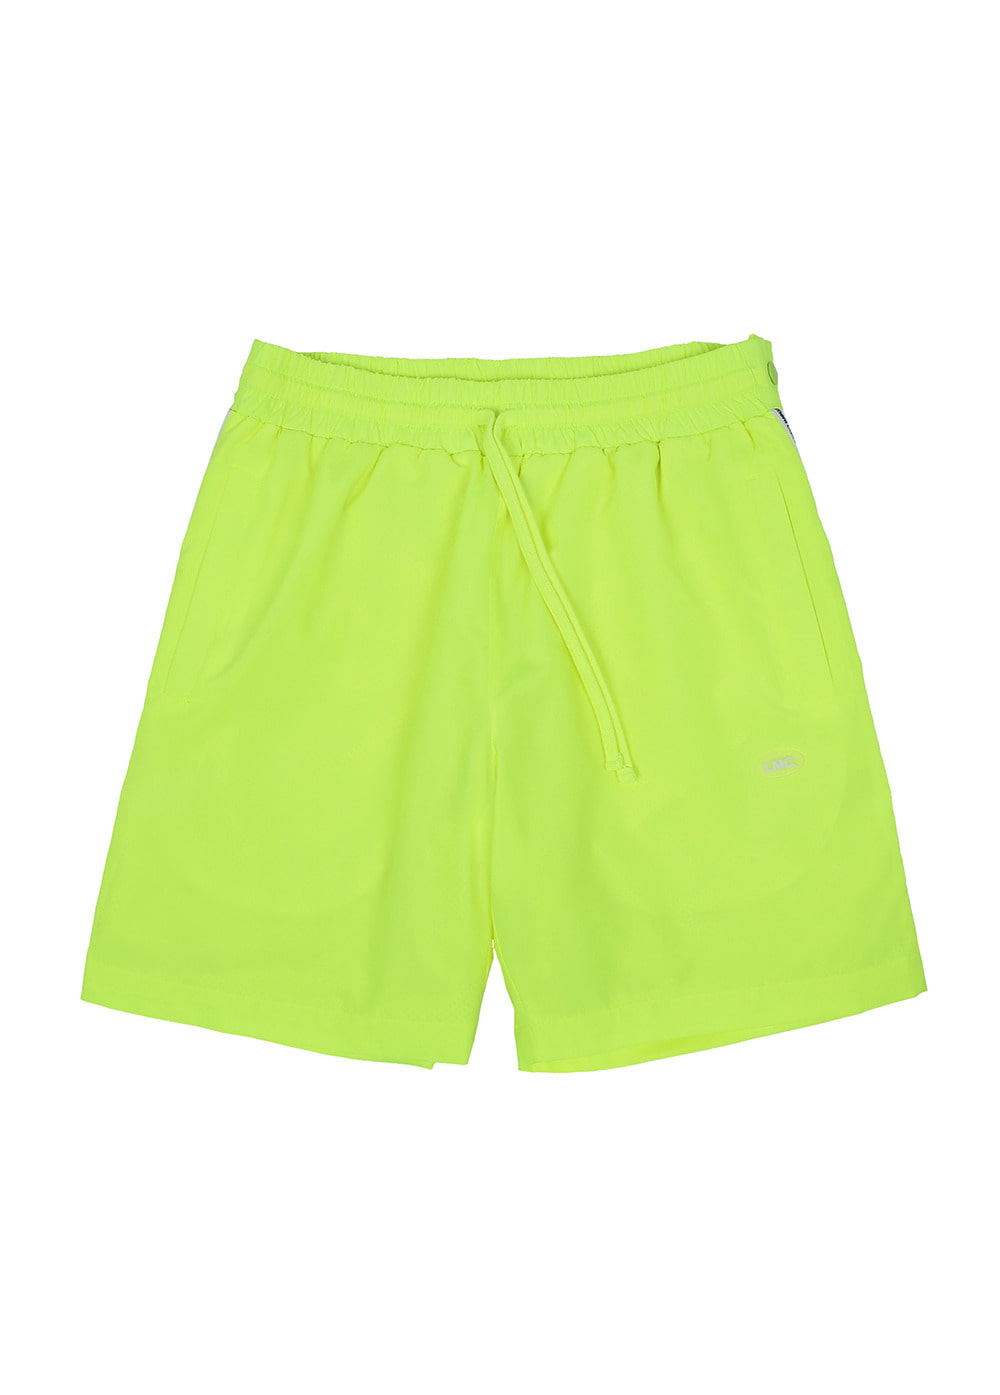 LMC ATHLETIC SNAP SHORTS neon green